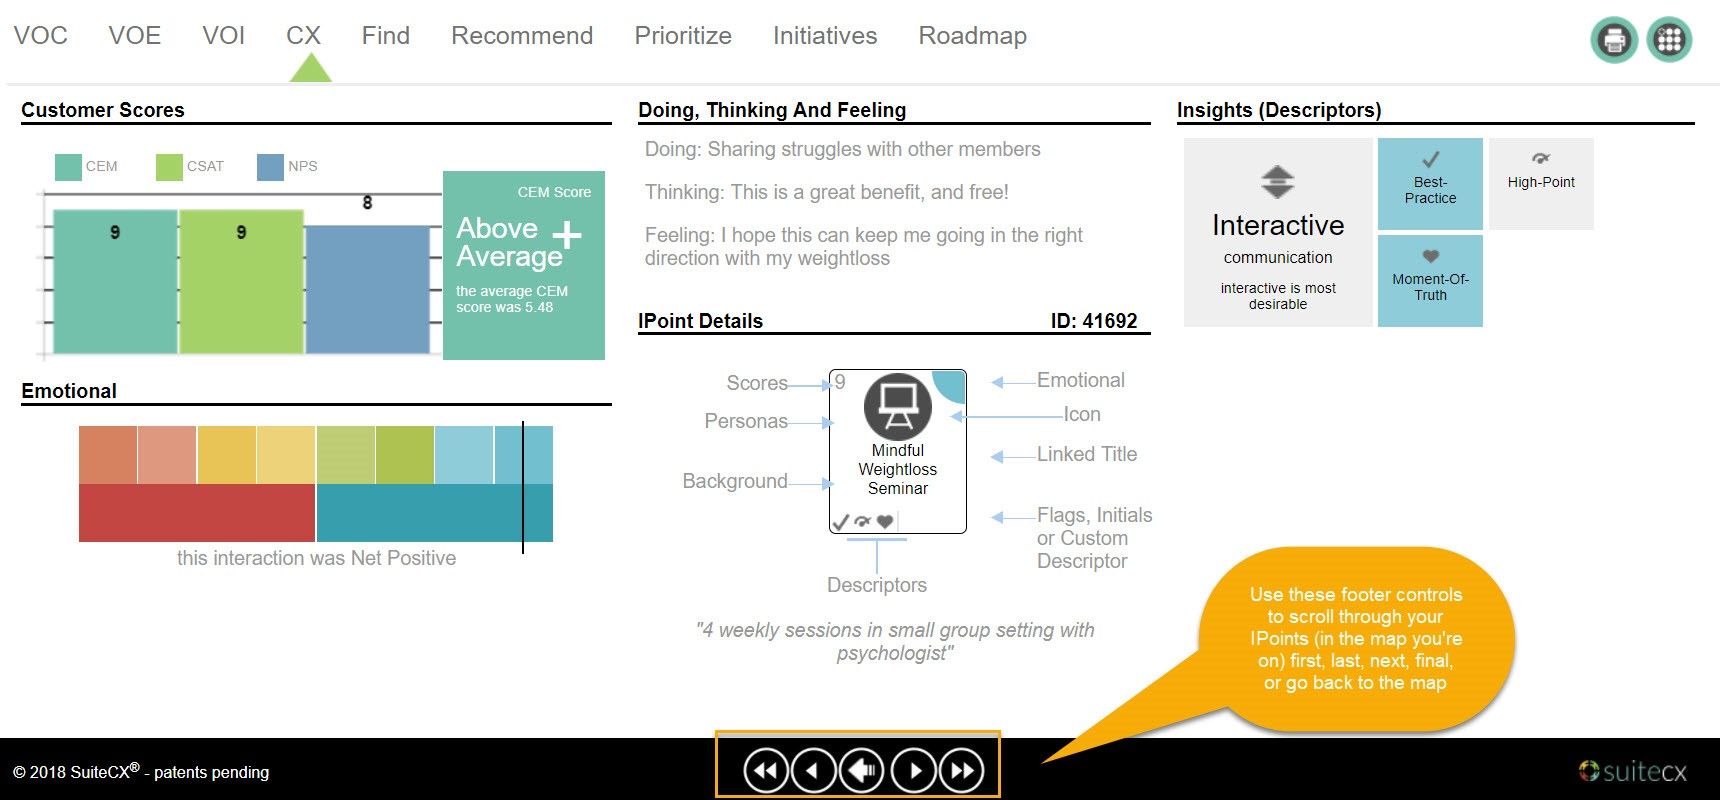 IPoint Editor 360 Summary View